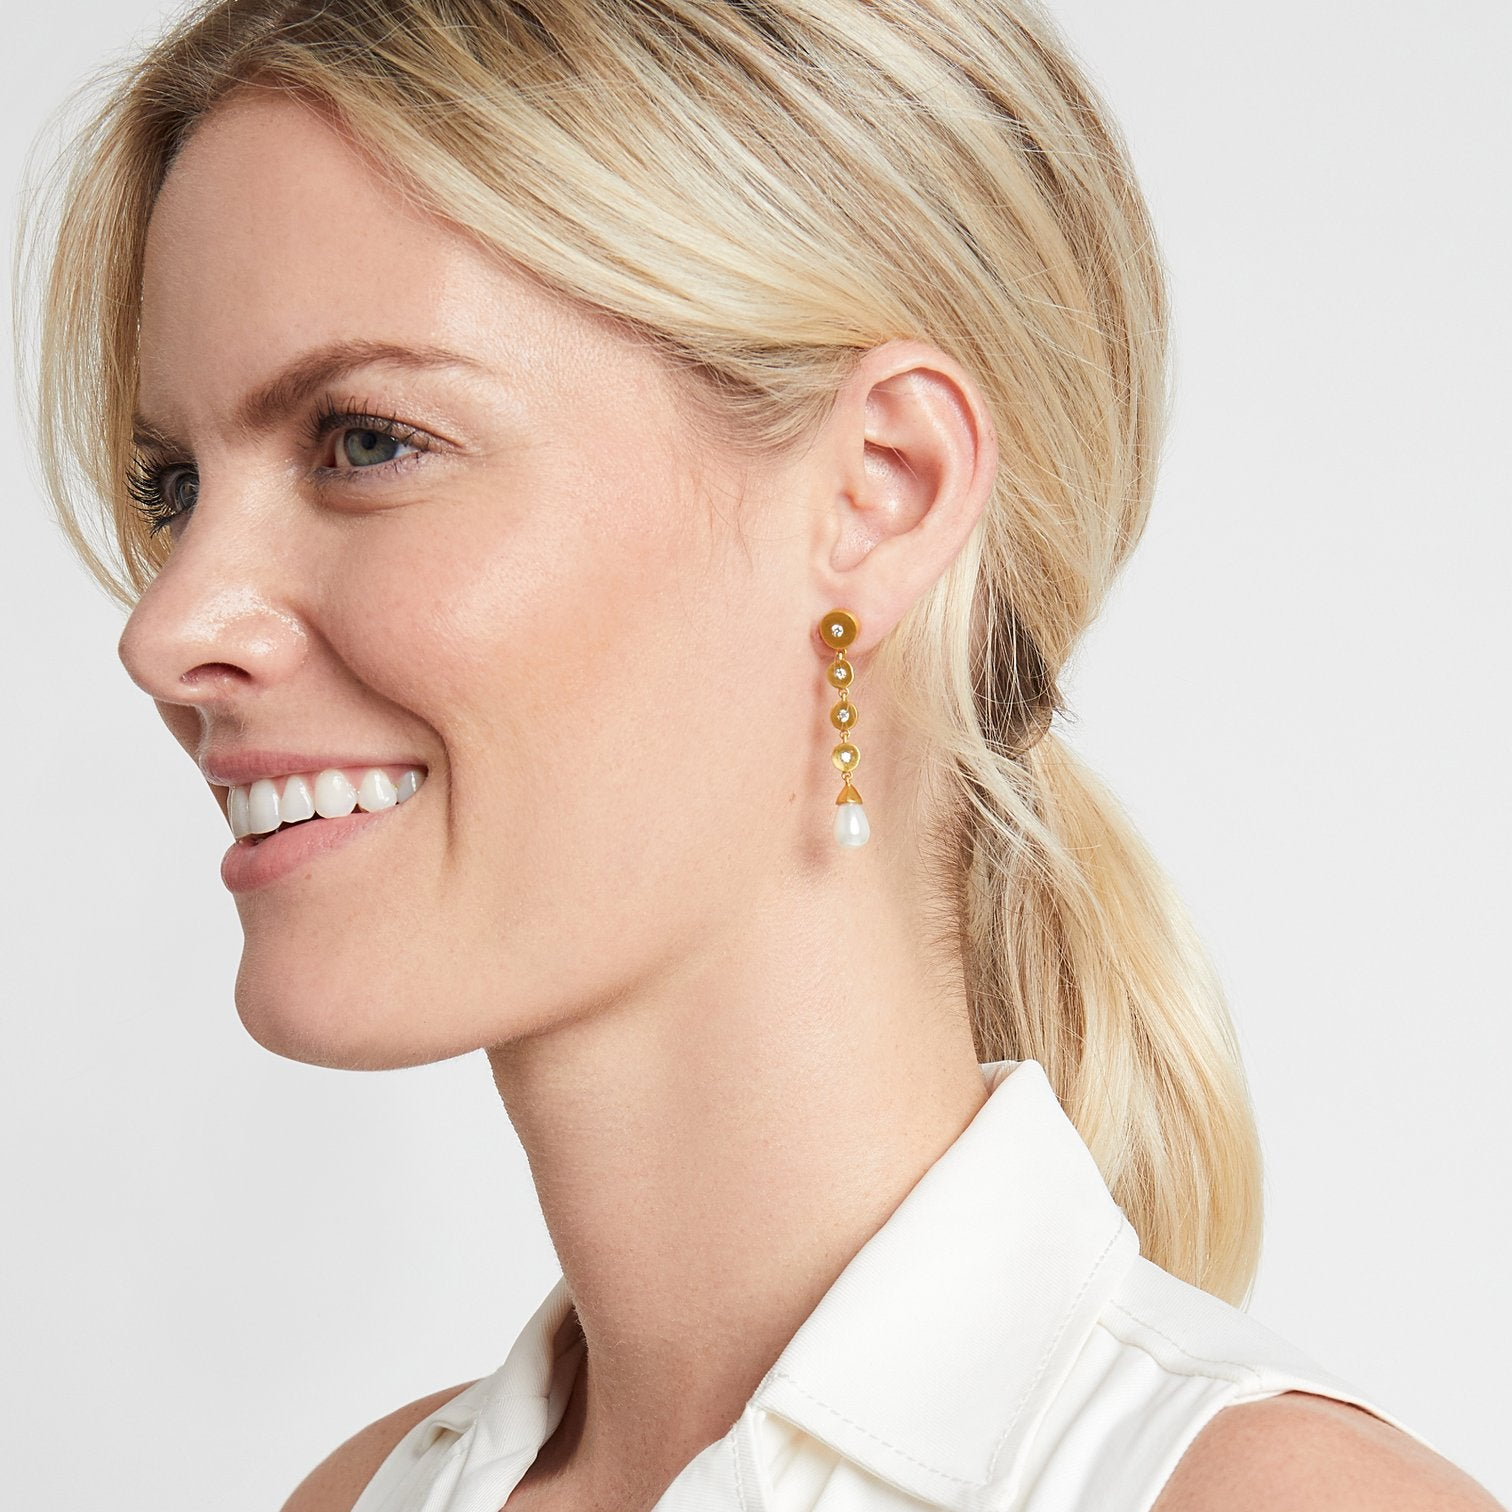 JULIE VOS - Poppy Statement Earring - Cubic Zirconia on model